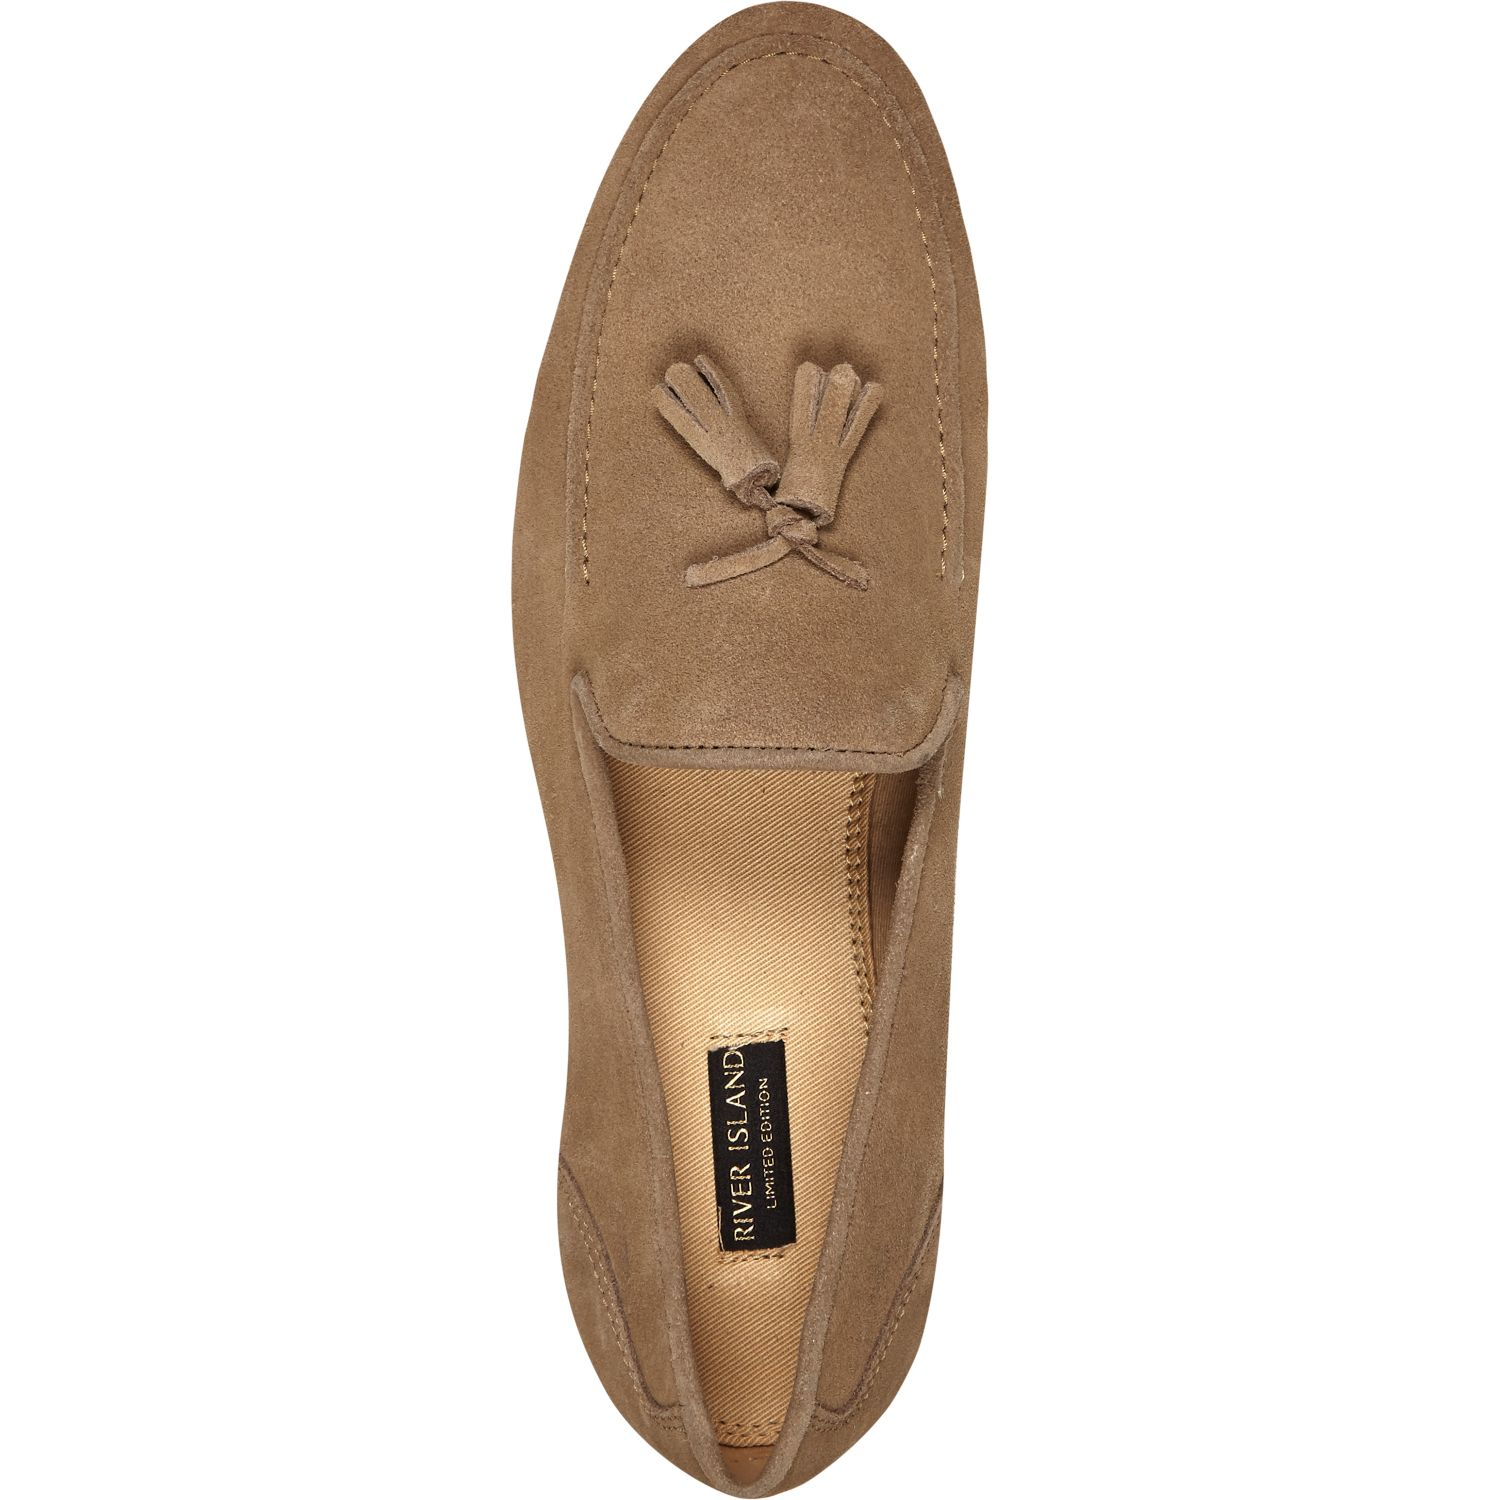 River Island Stone Suede Tassel Loafers in Natural for Men